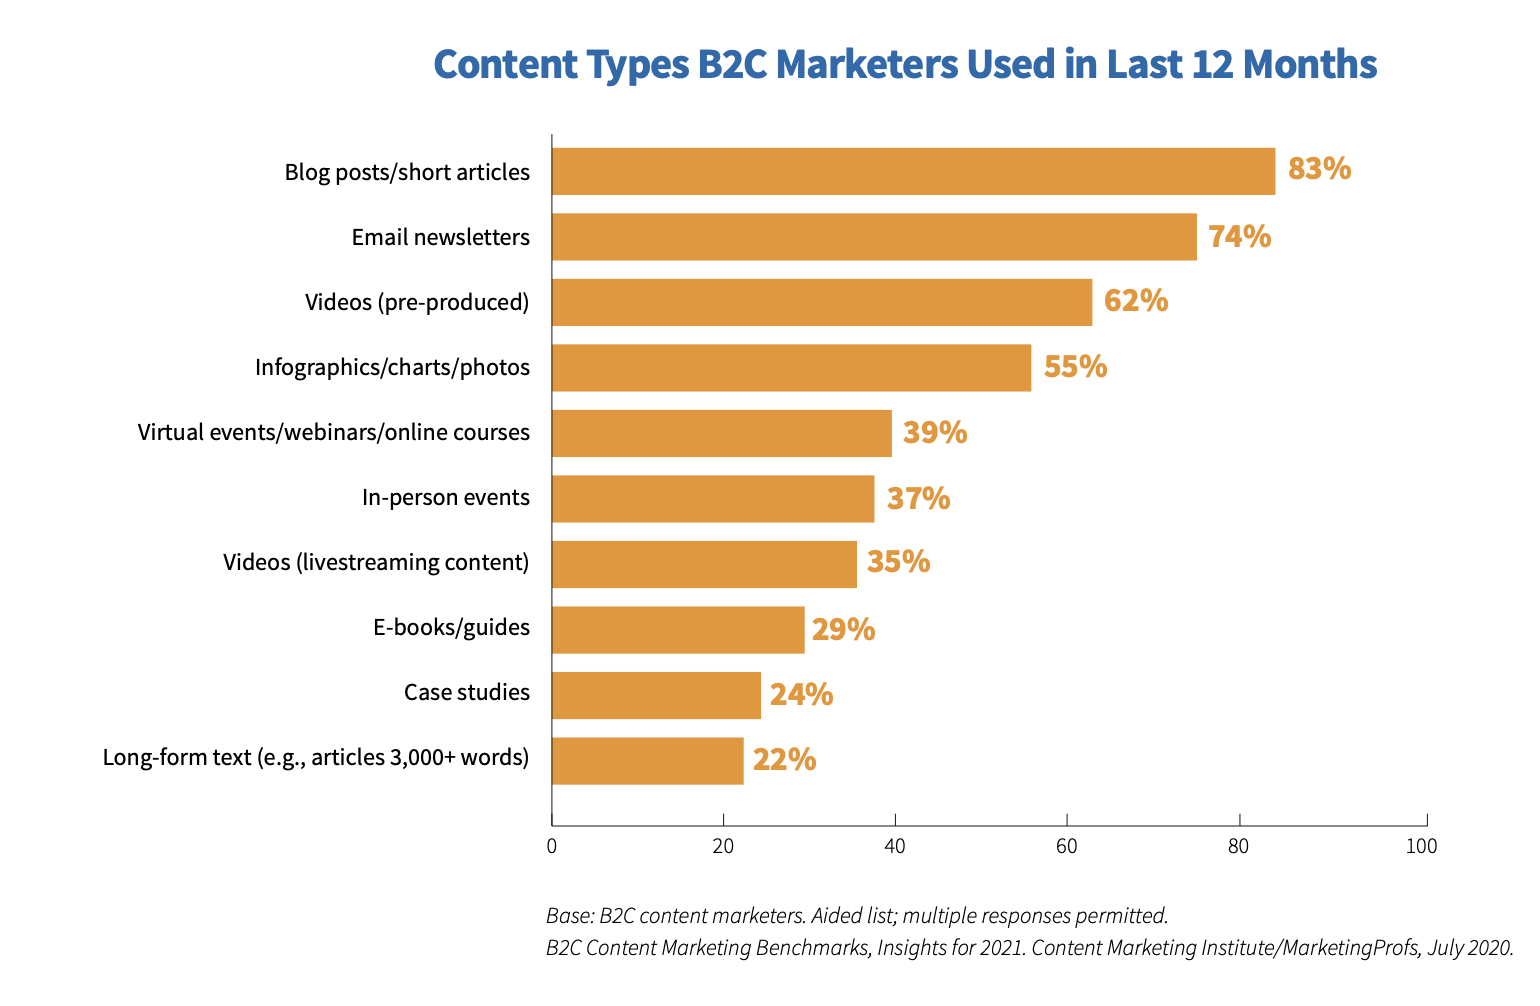 Content Types B2C Marketers Use